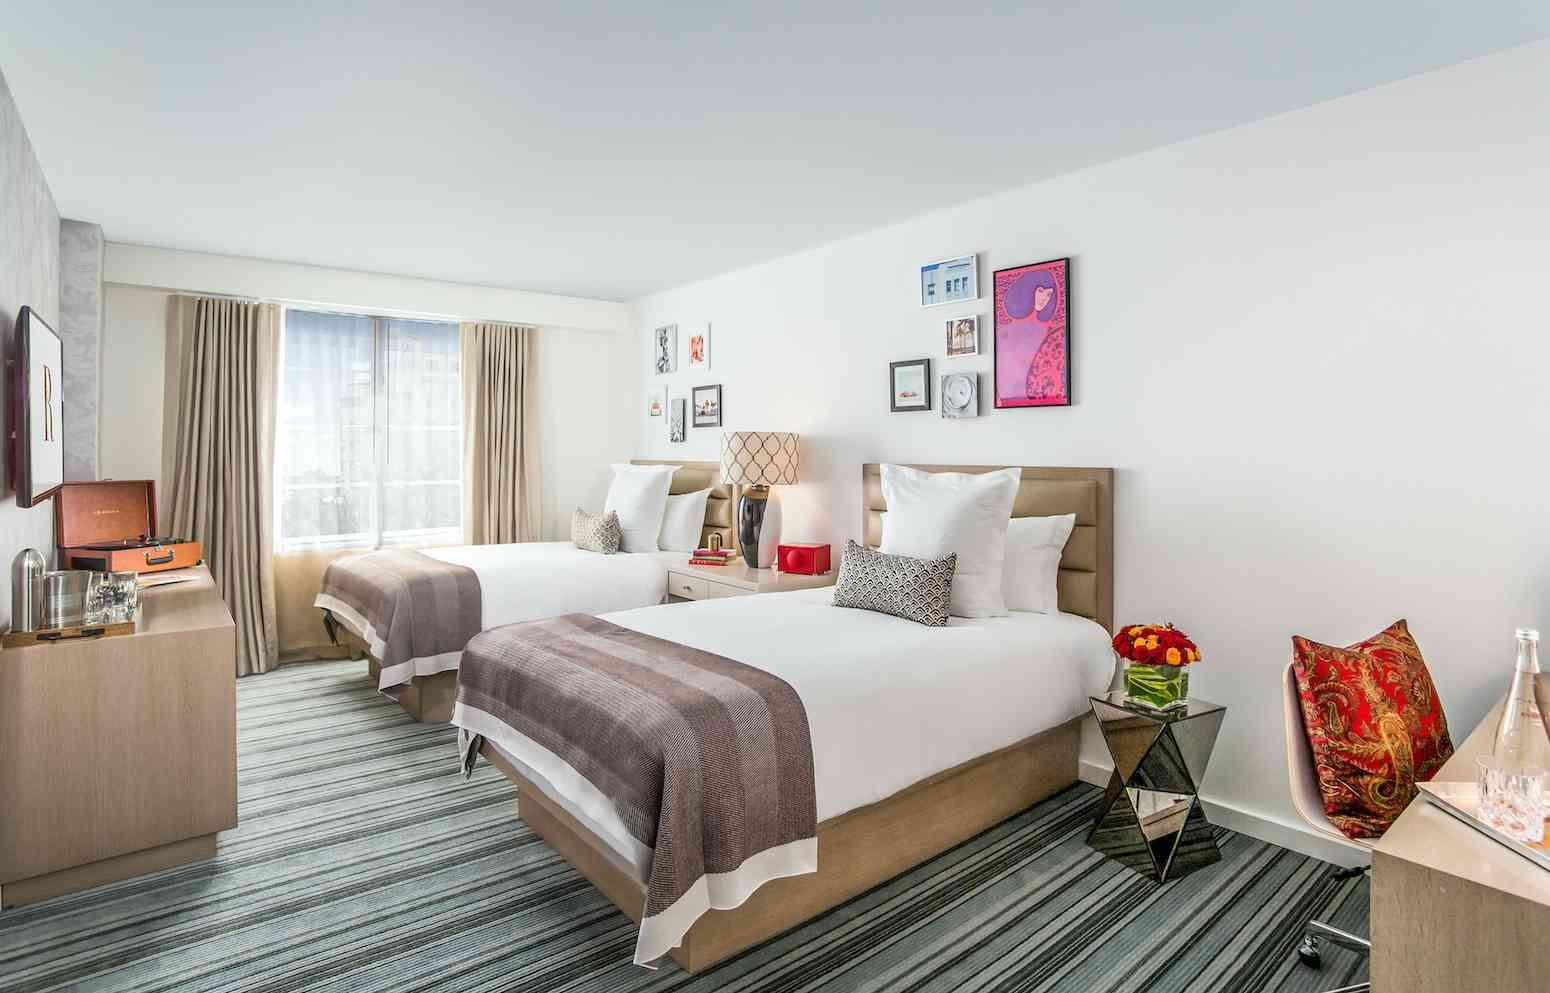 double beds in light room with beige accents